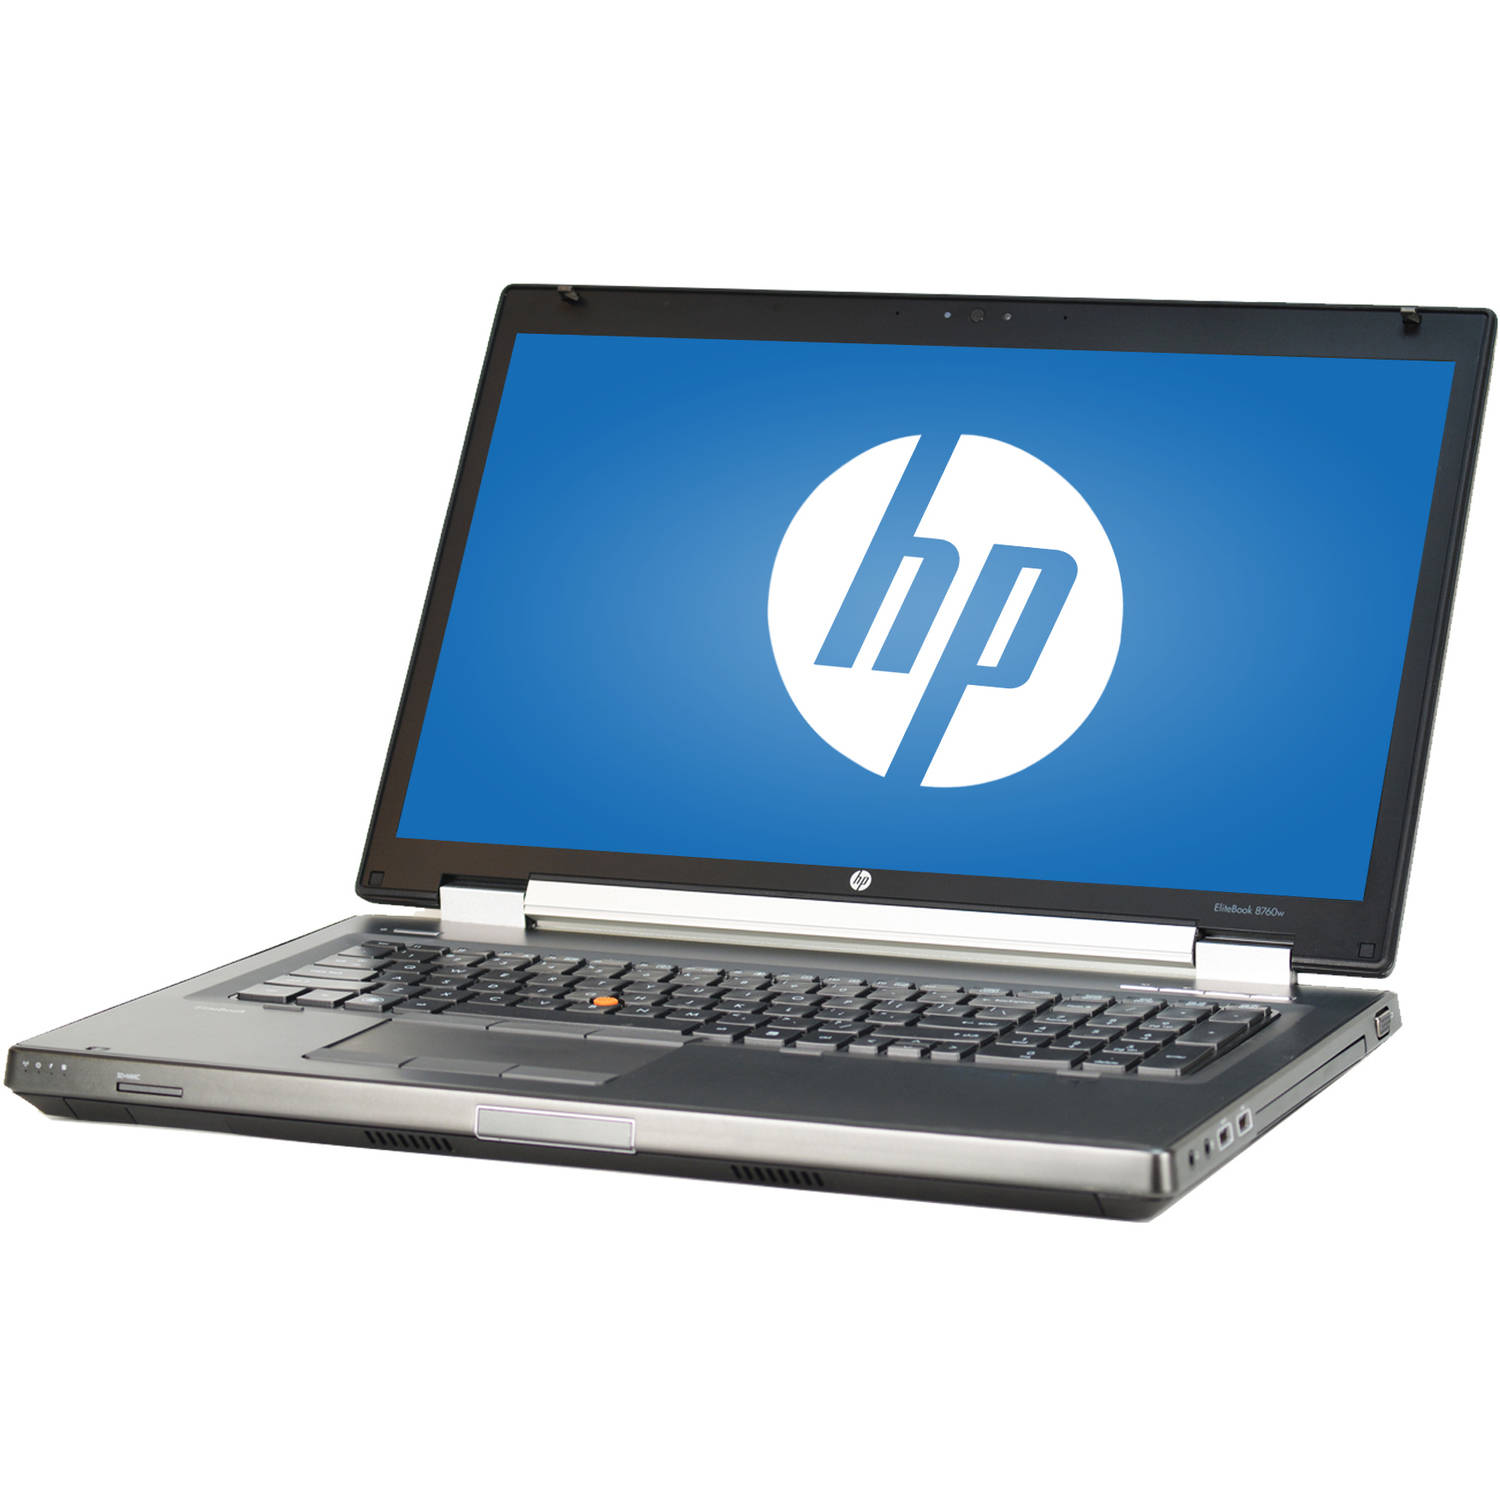 "Refurbished HP Silver 17.3"" 8760W Elitebook Laptop PC with Intel Core i7-2720QM Processor, 8GB Memory, 500GB Hard Drive and Windows 7 Professional"